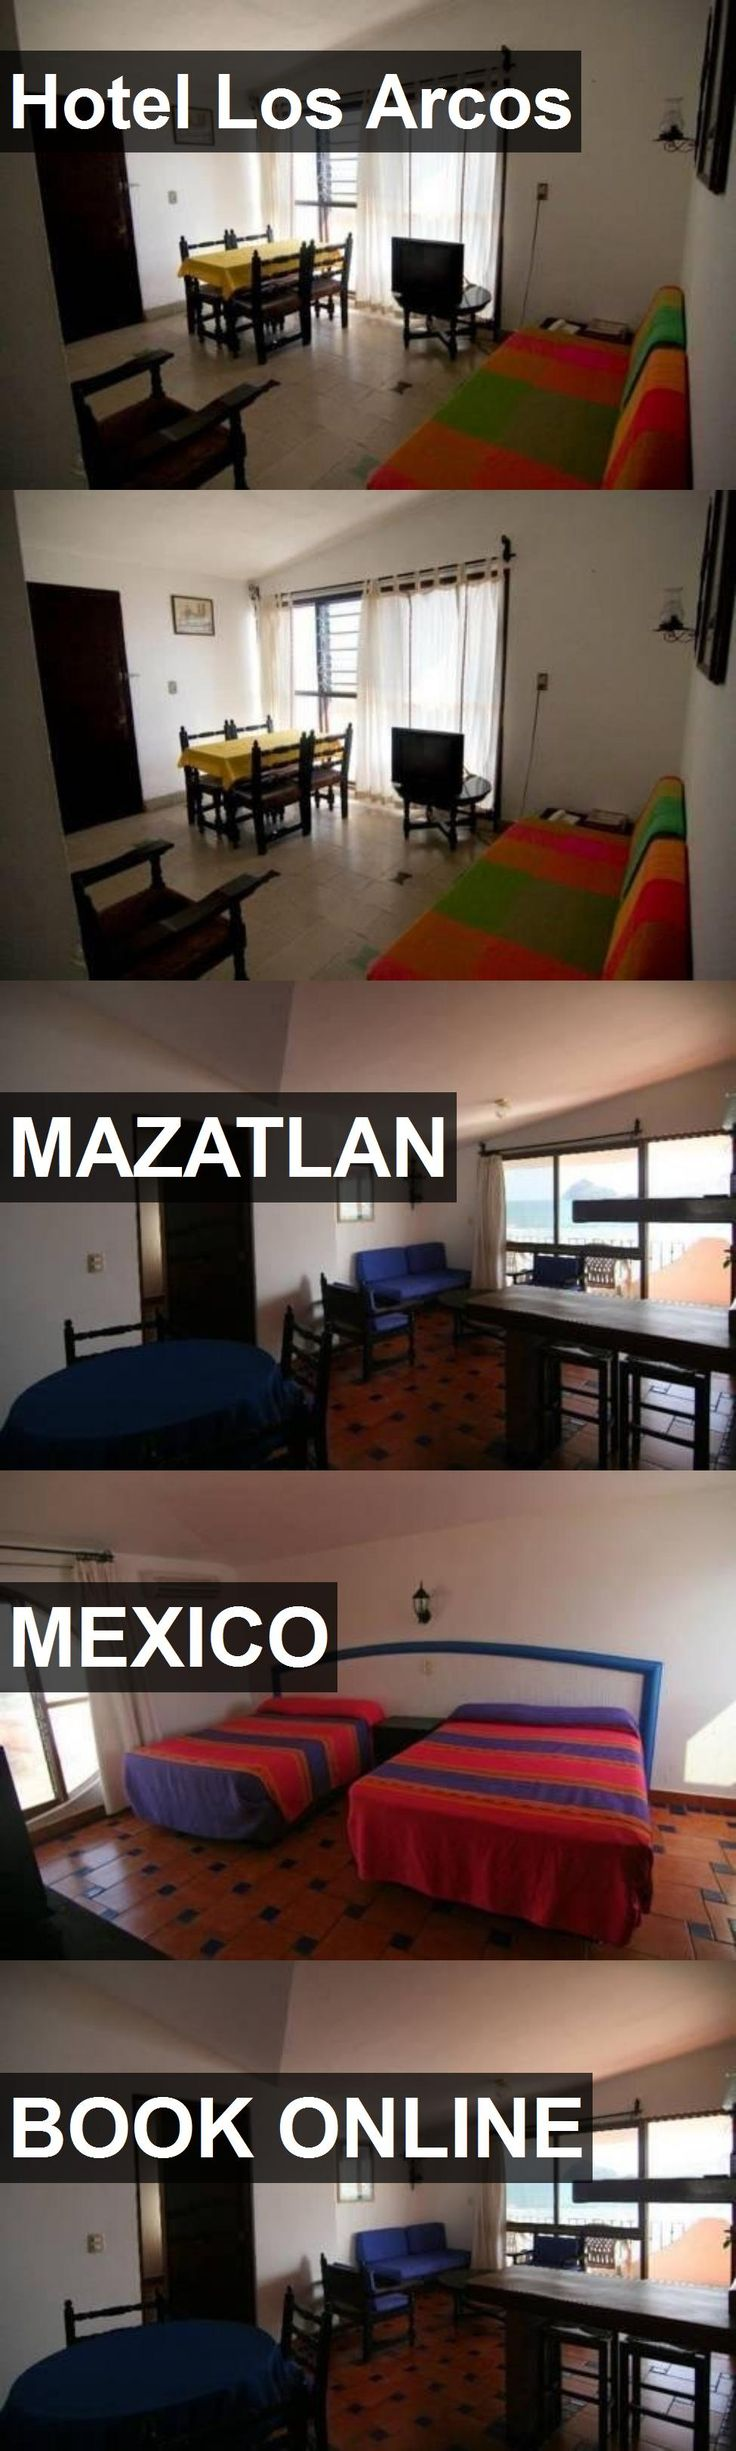 Hotel Los Arcos in Mazatlan, Mexico. For more information, photos, reviews and best prices please follow the link. #Mexico #Mazatlan #travel #vacation #hotel